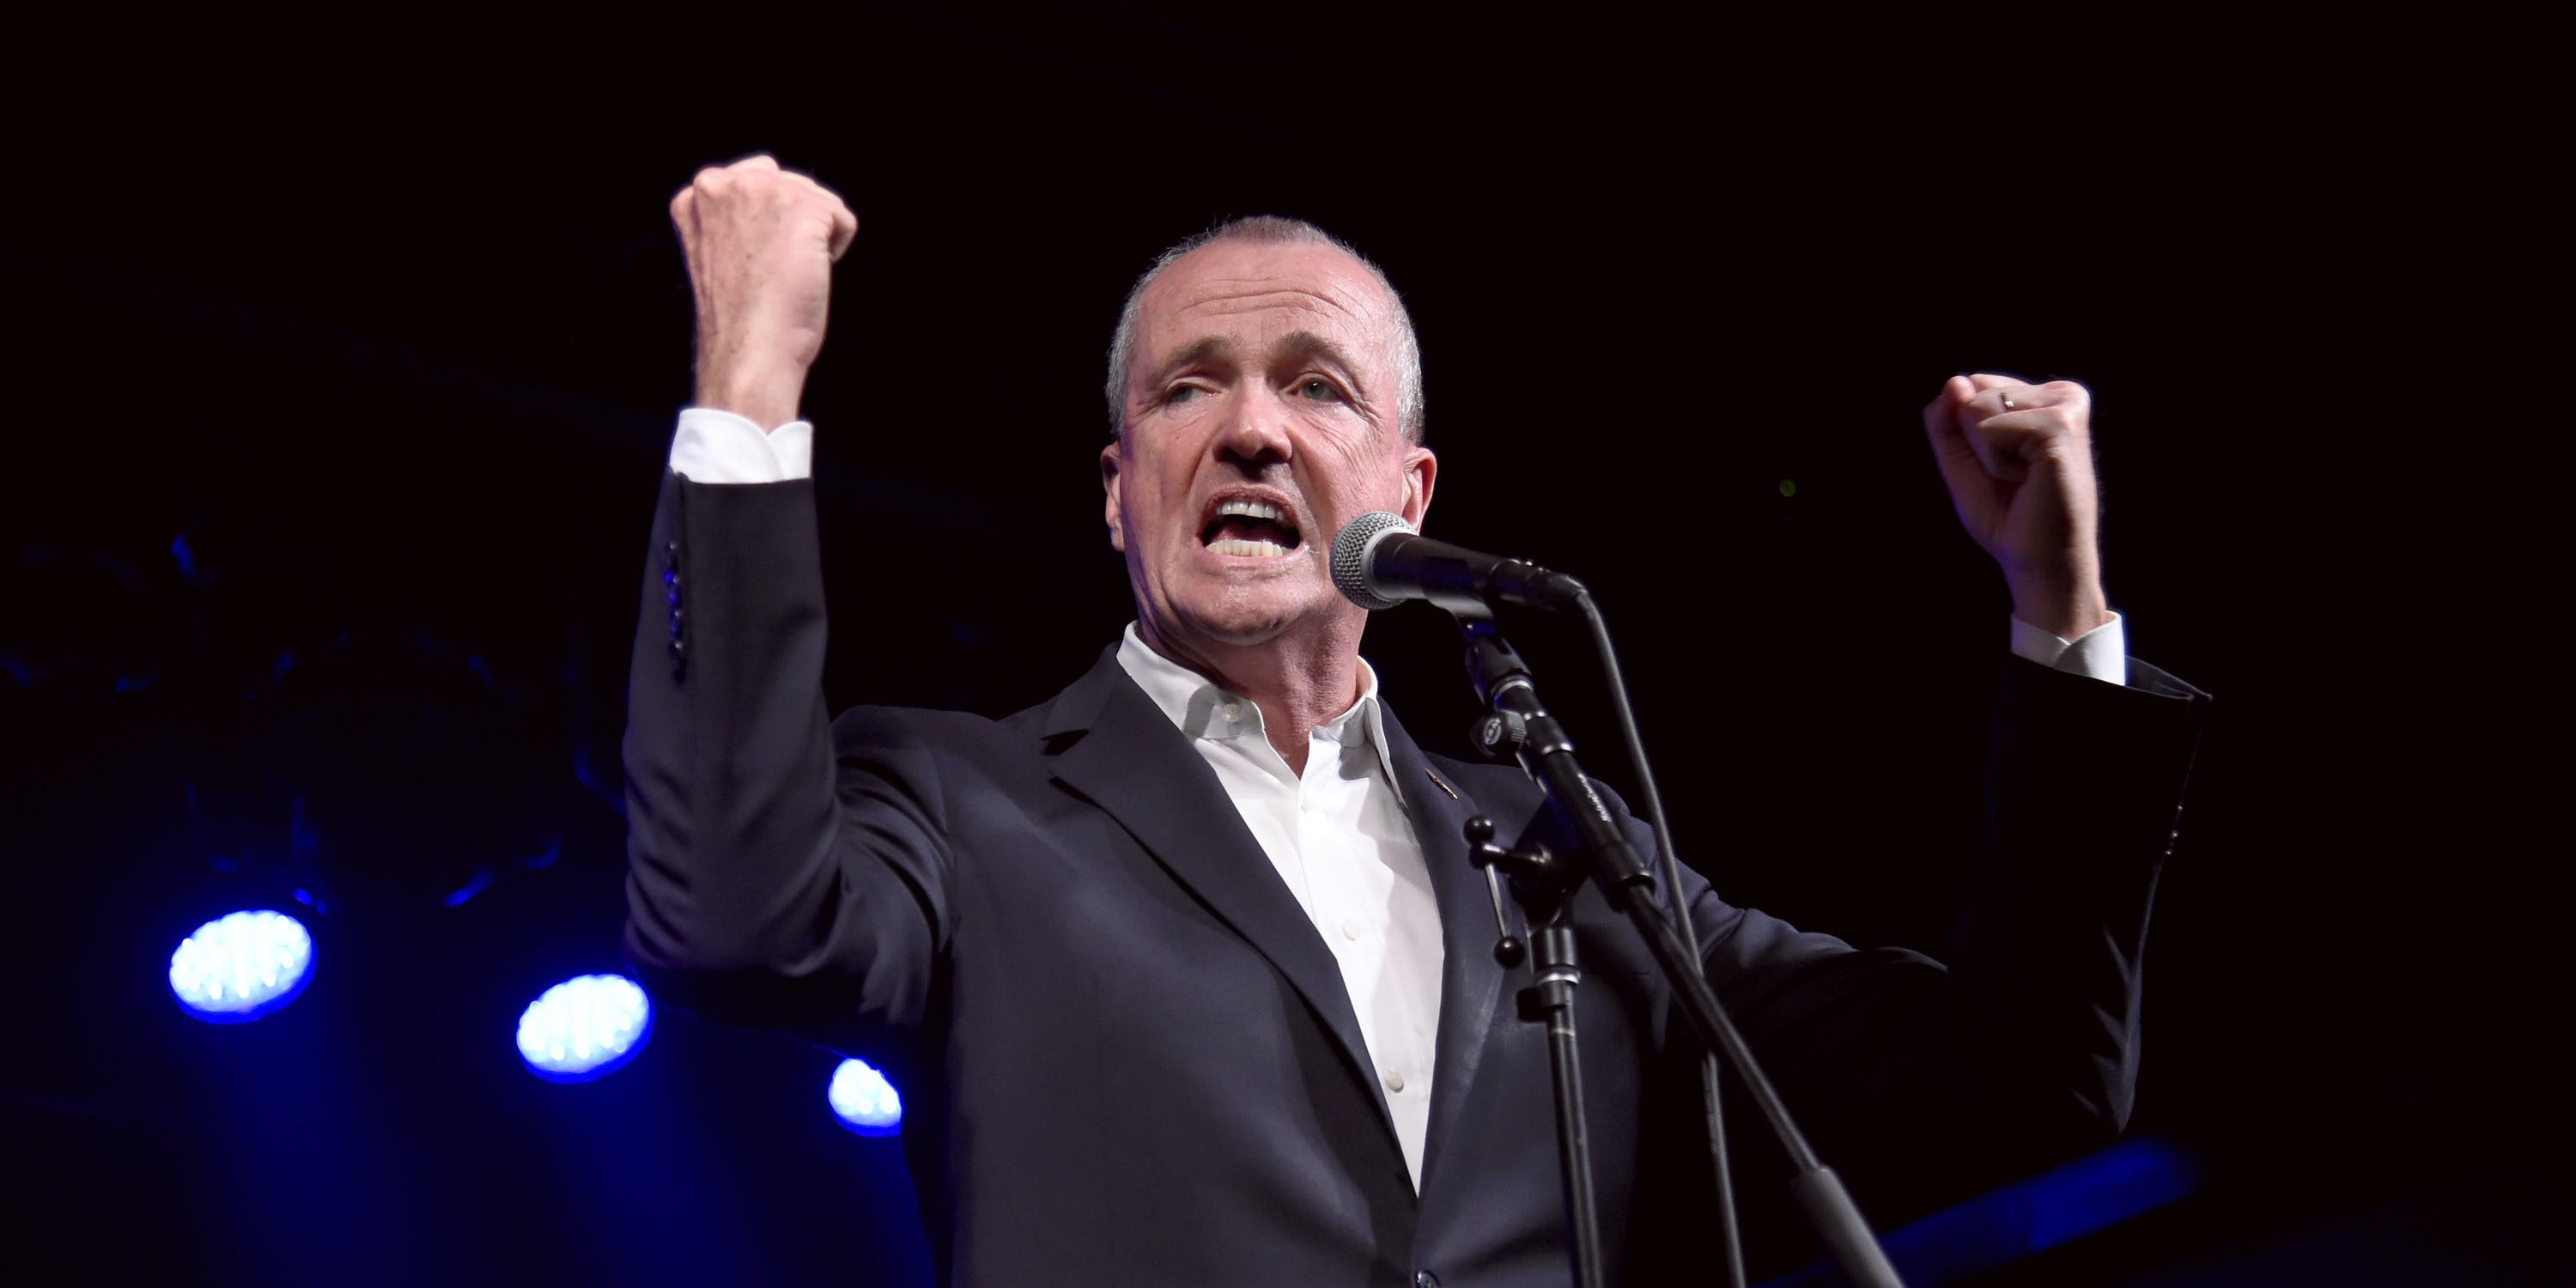 ASBURY PARK, NJ - JUNE 18: Governor of New Jersey Phil Murphy speaks onstage during the Grand Re-Opening of Asbury Lanes at Asbury Lanes on June 18, 2018 in Asbury Park, New Jersey. Murphy has been a vocal advocate of recreational marijuana legalization. His Attorney General recently ordered a stay on marijuana prosecutions until September.